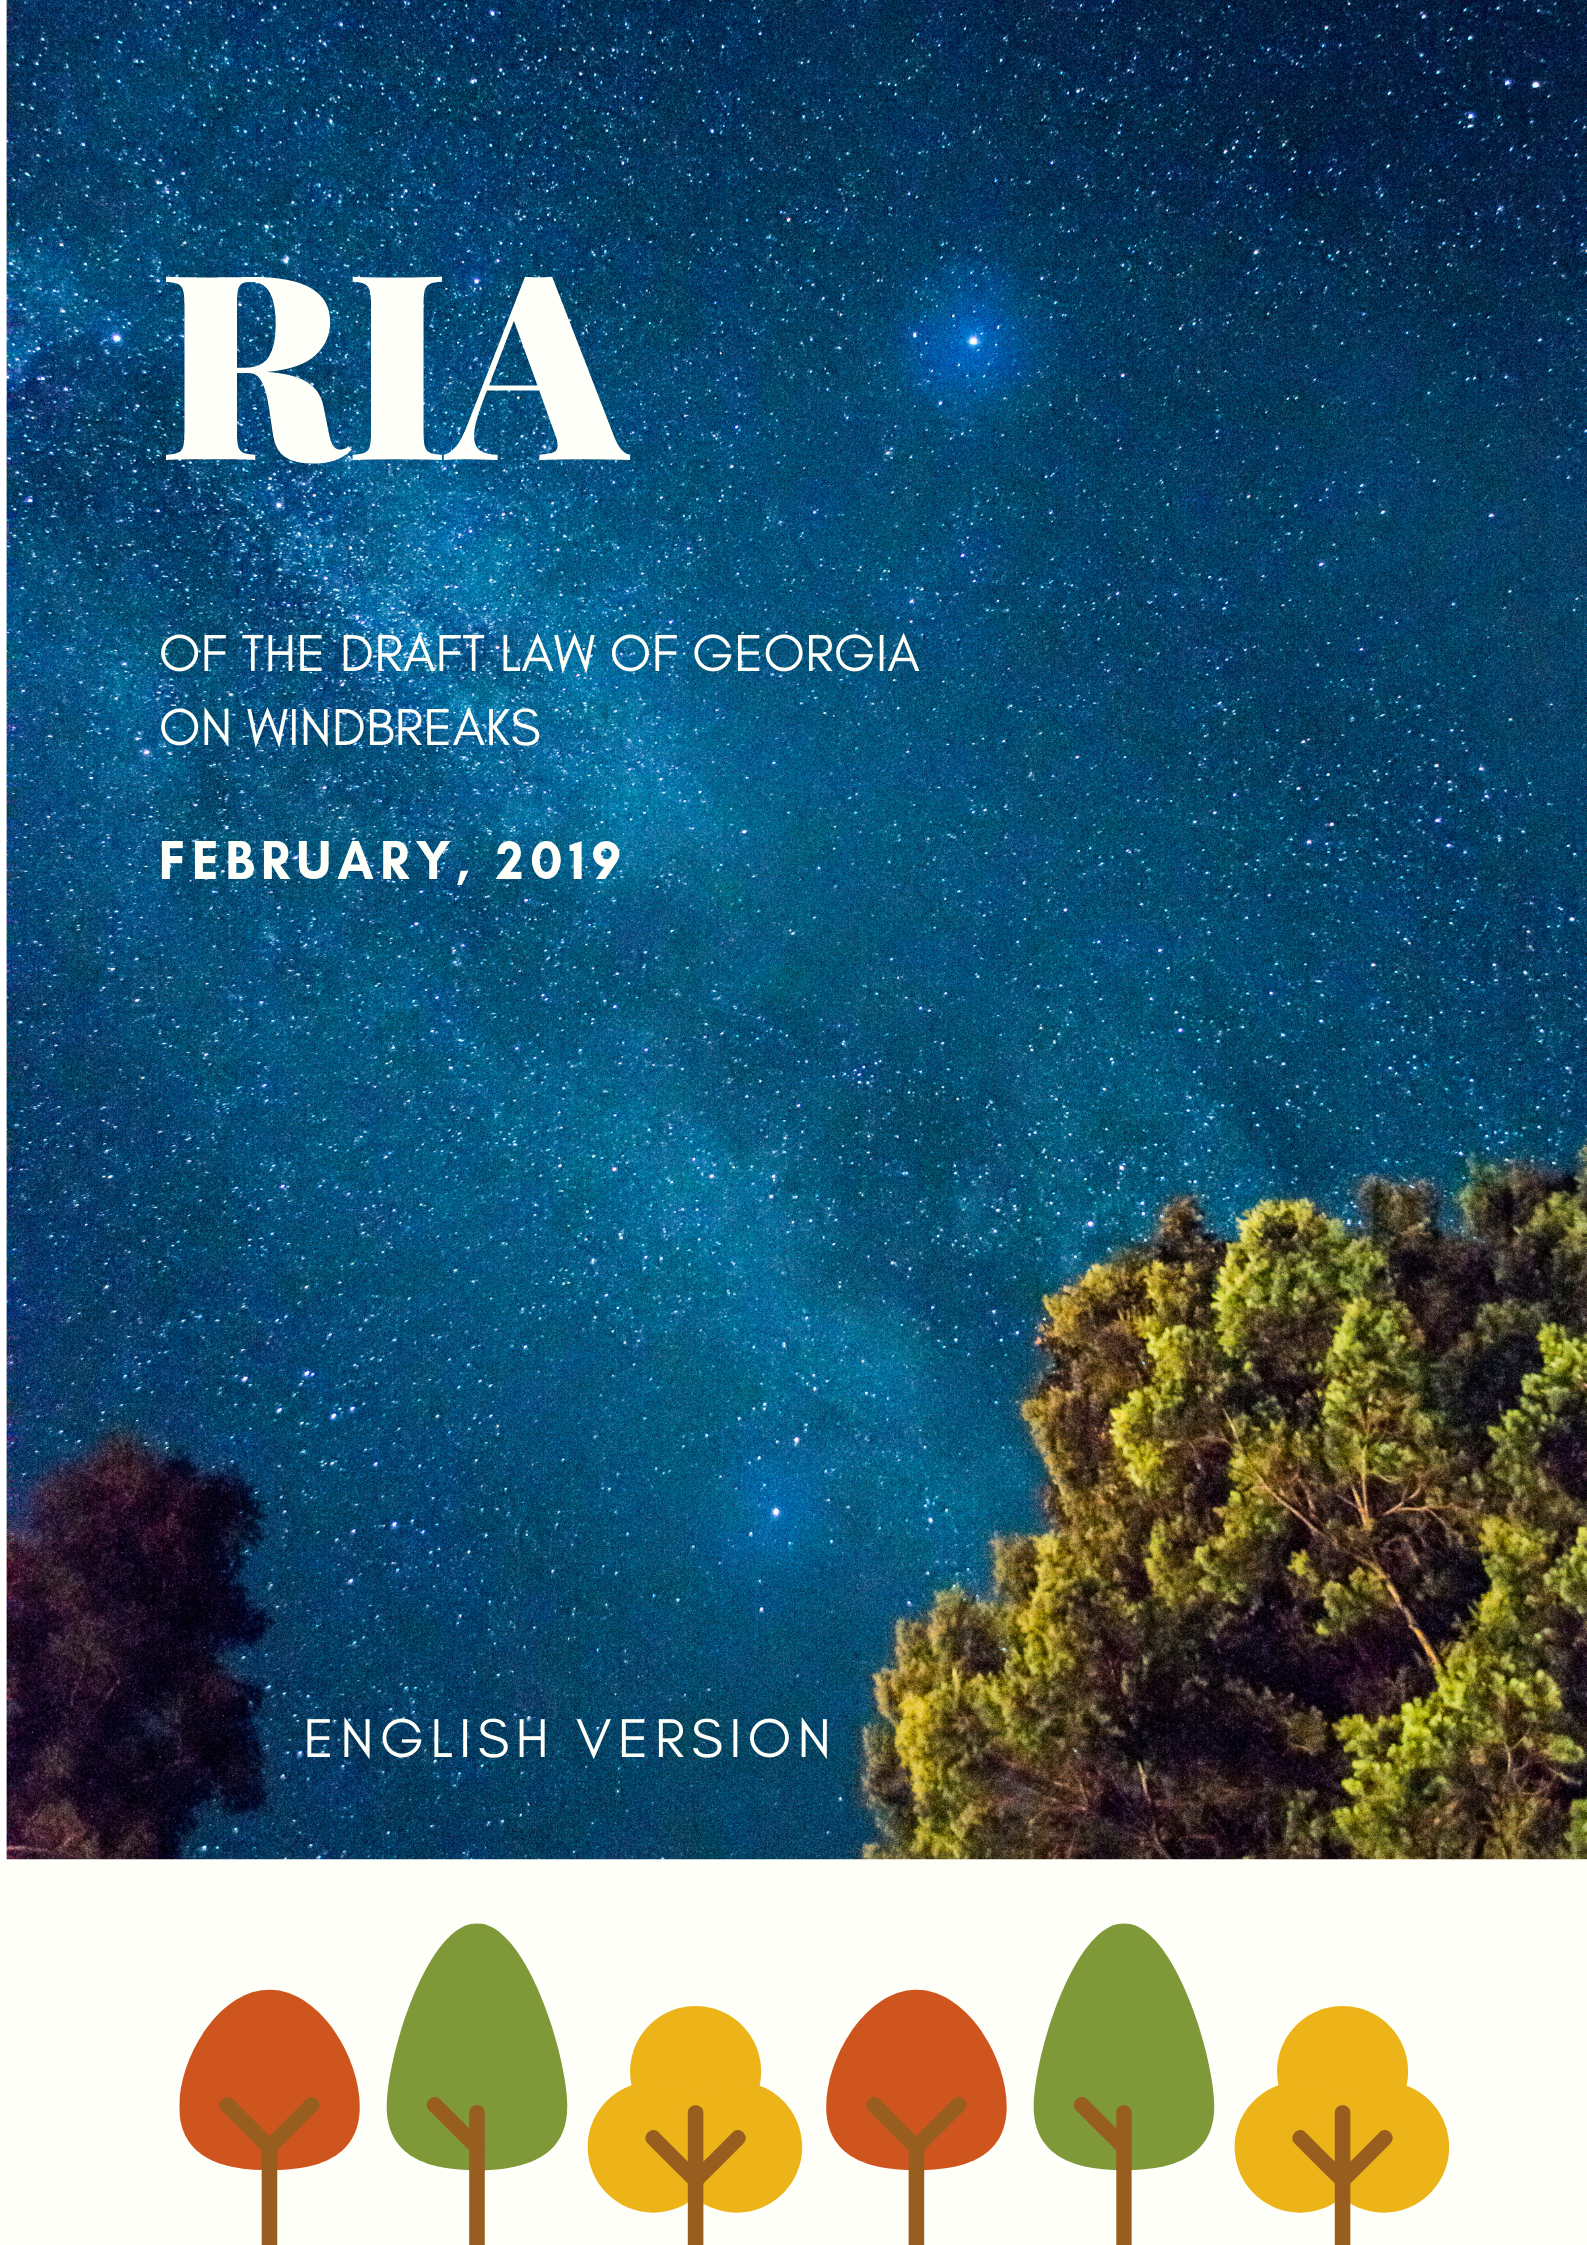 REGULATORY IMPACT ASSESSMENT (RIA) OF THE DRAFT LAW OF GEORGIA ON WINDBREAKS